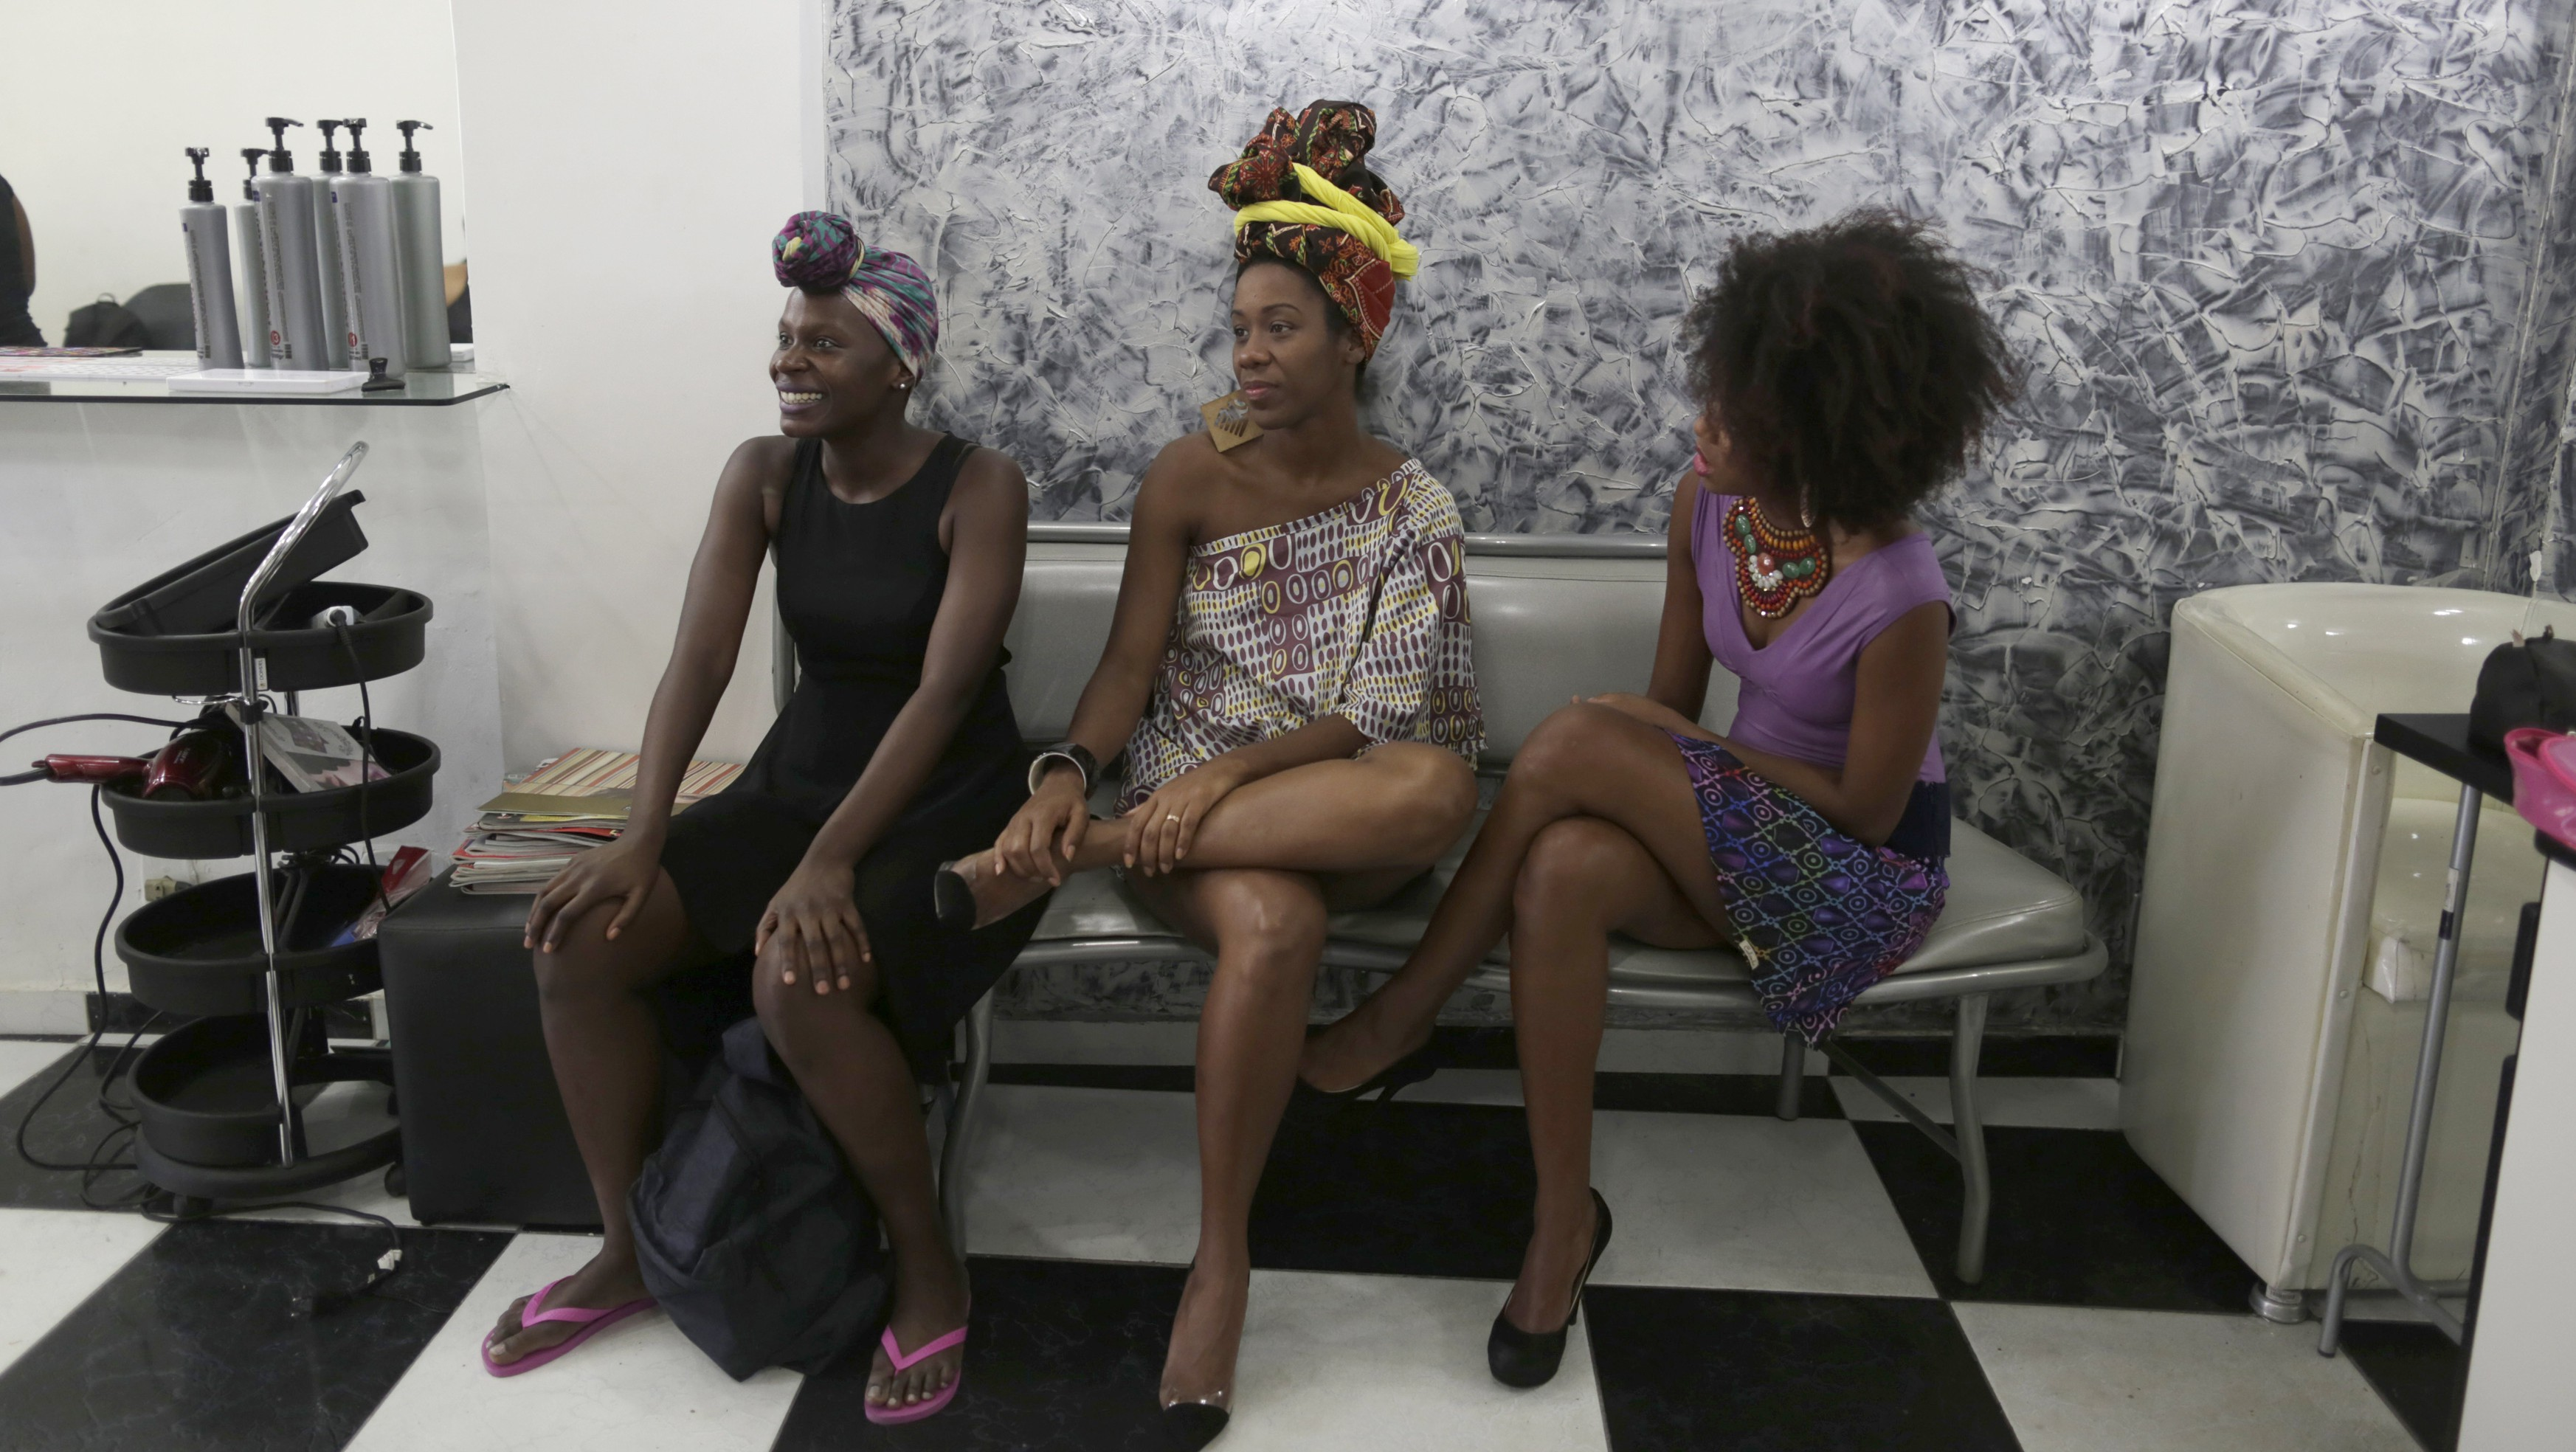 Models wait to have their hair styled at a hair salon before attending celebrations for the annual Black Consciousness Day in Brazil in Rio de Janeiro November 20, 2013. REUTERS/Pilar Olivares (BRAZIL - Tags: ENTERTAINMENT FASHION ANNIVERSARY SOCIETY) - RTX15MDB